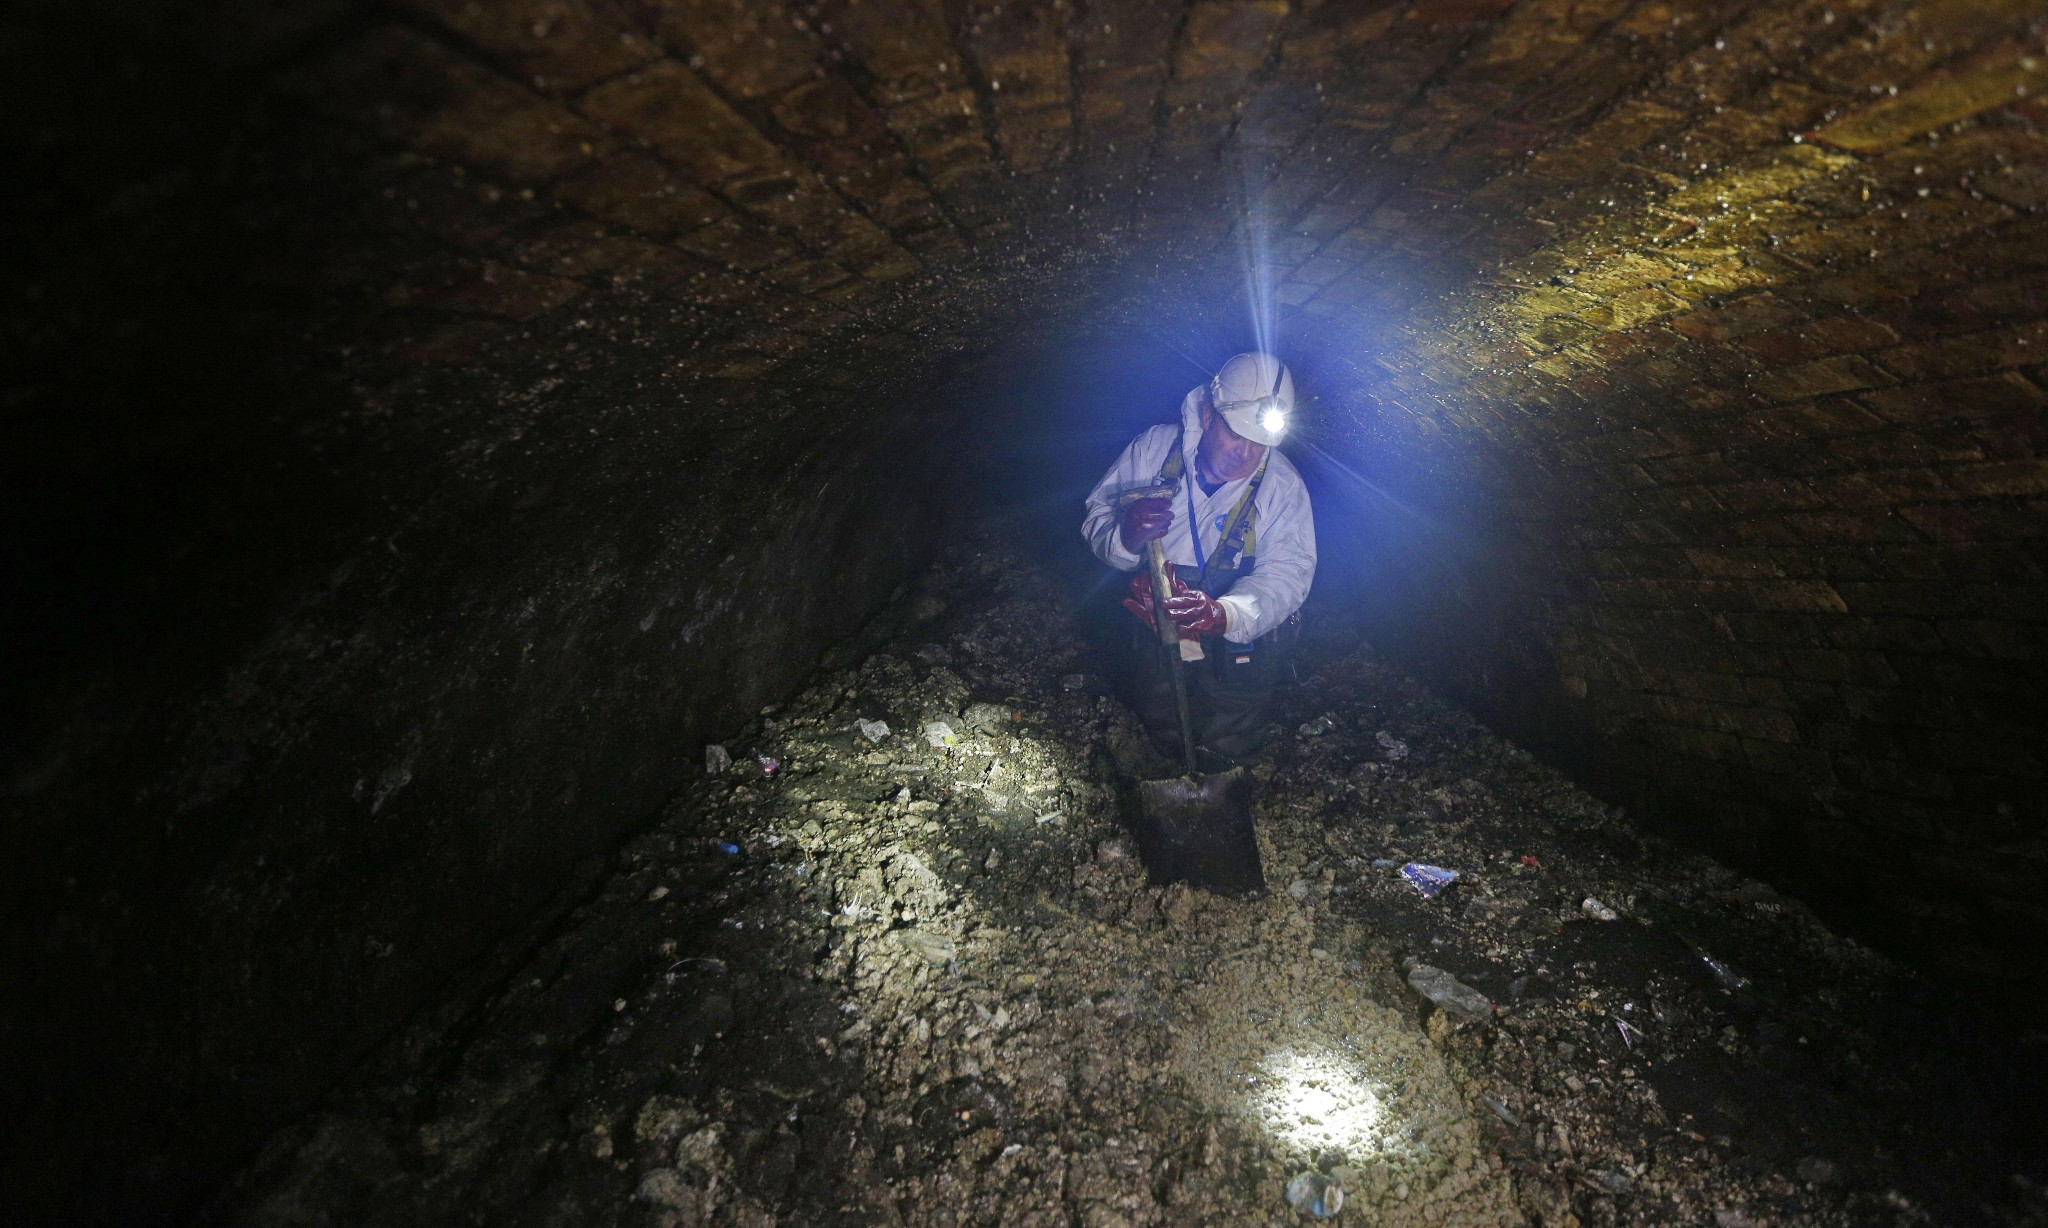 London's fatberg on show: 'We thought of pickling it'